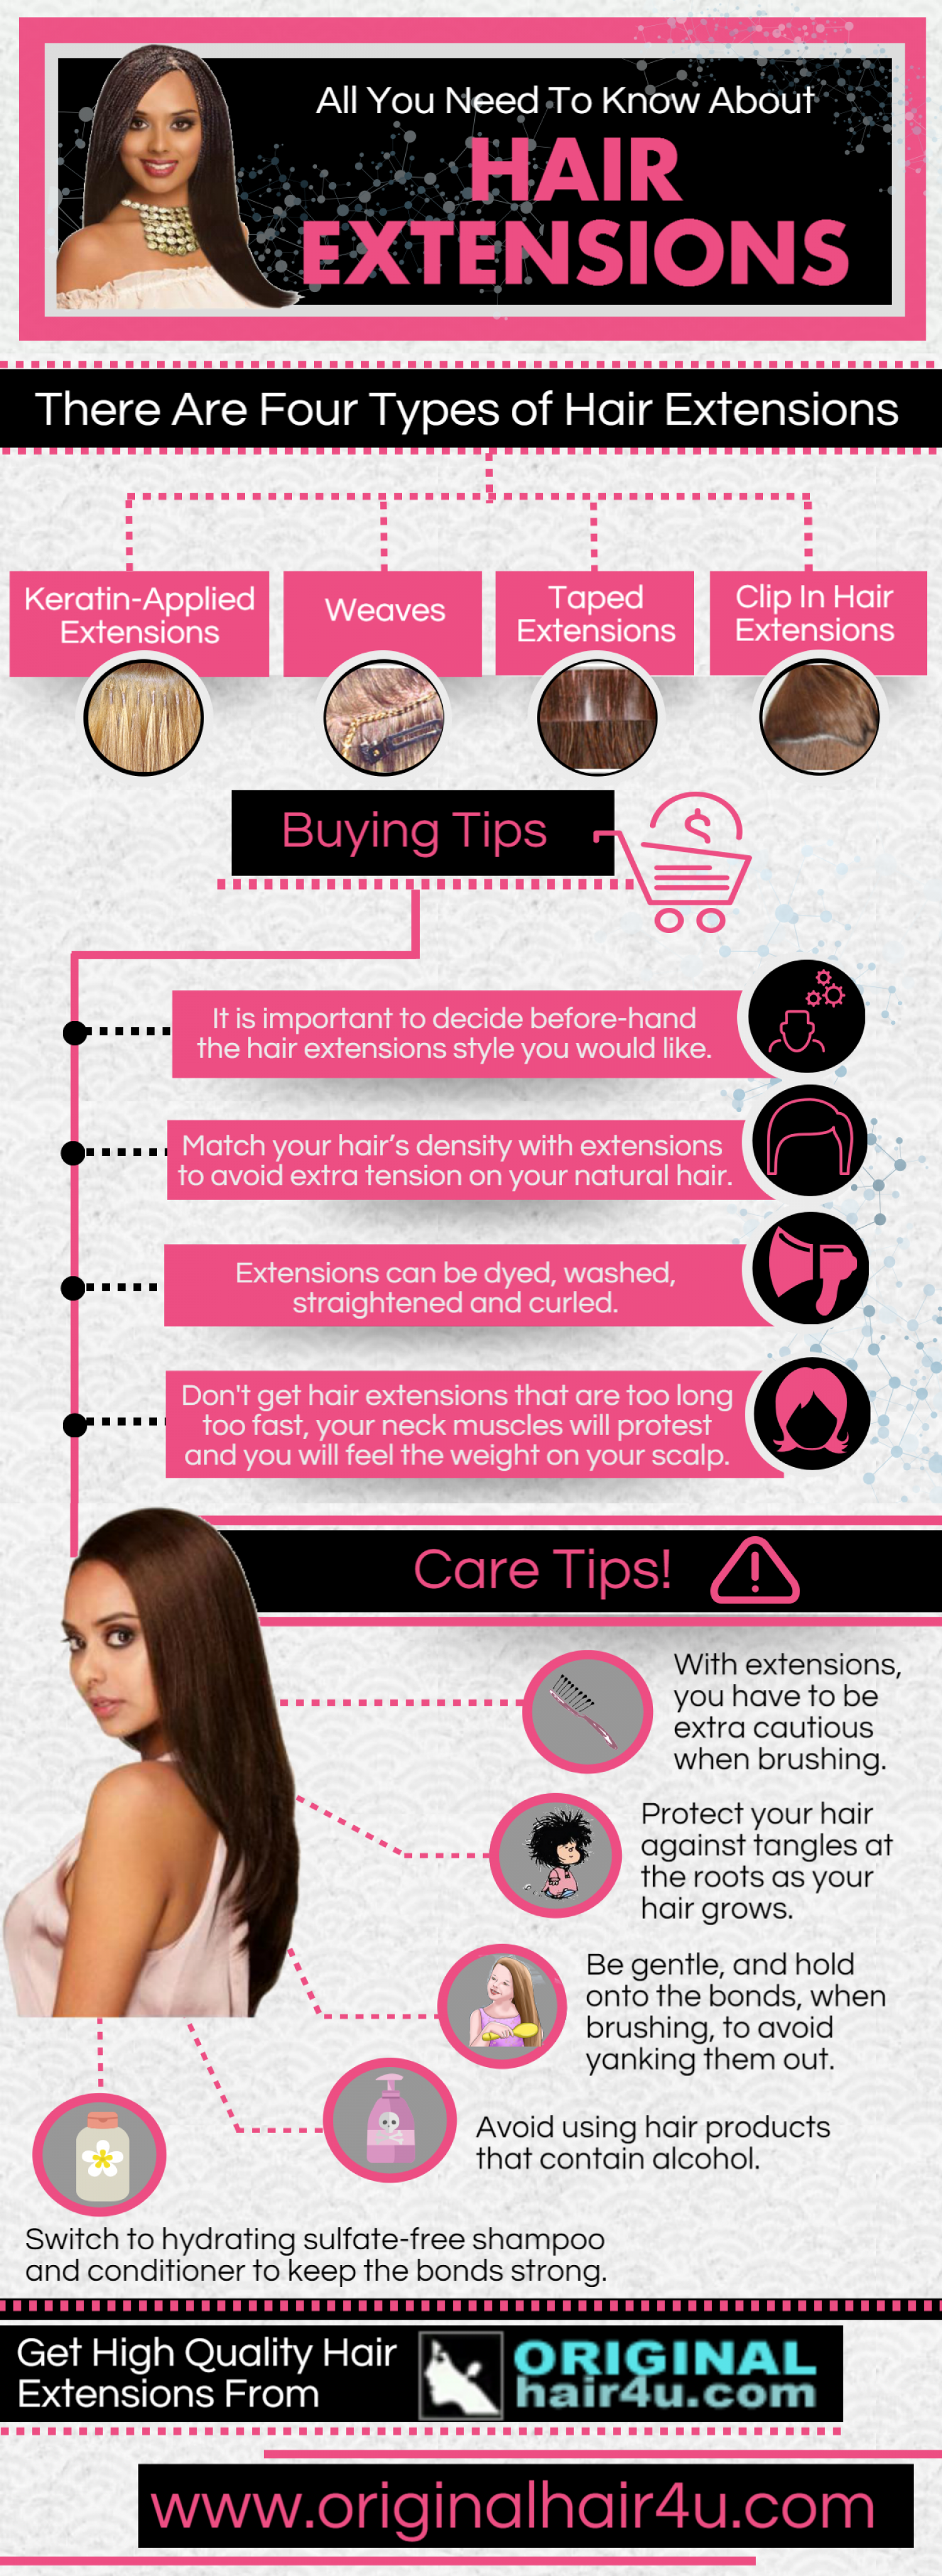 All You Need To Know About Hair Extensions!